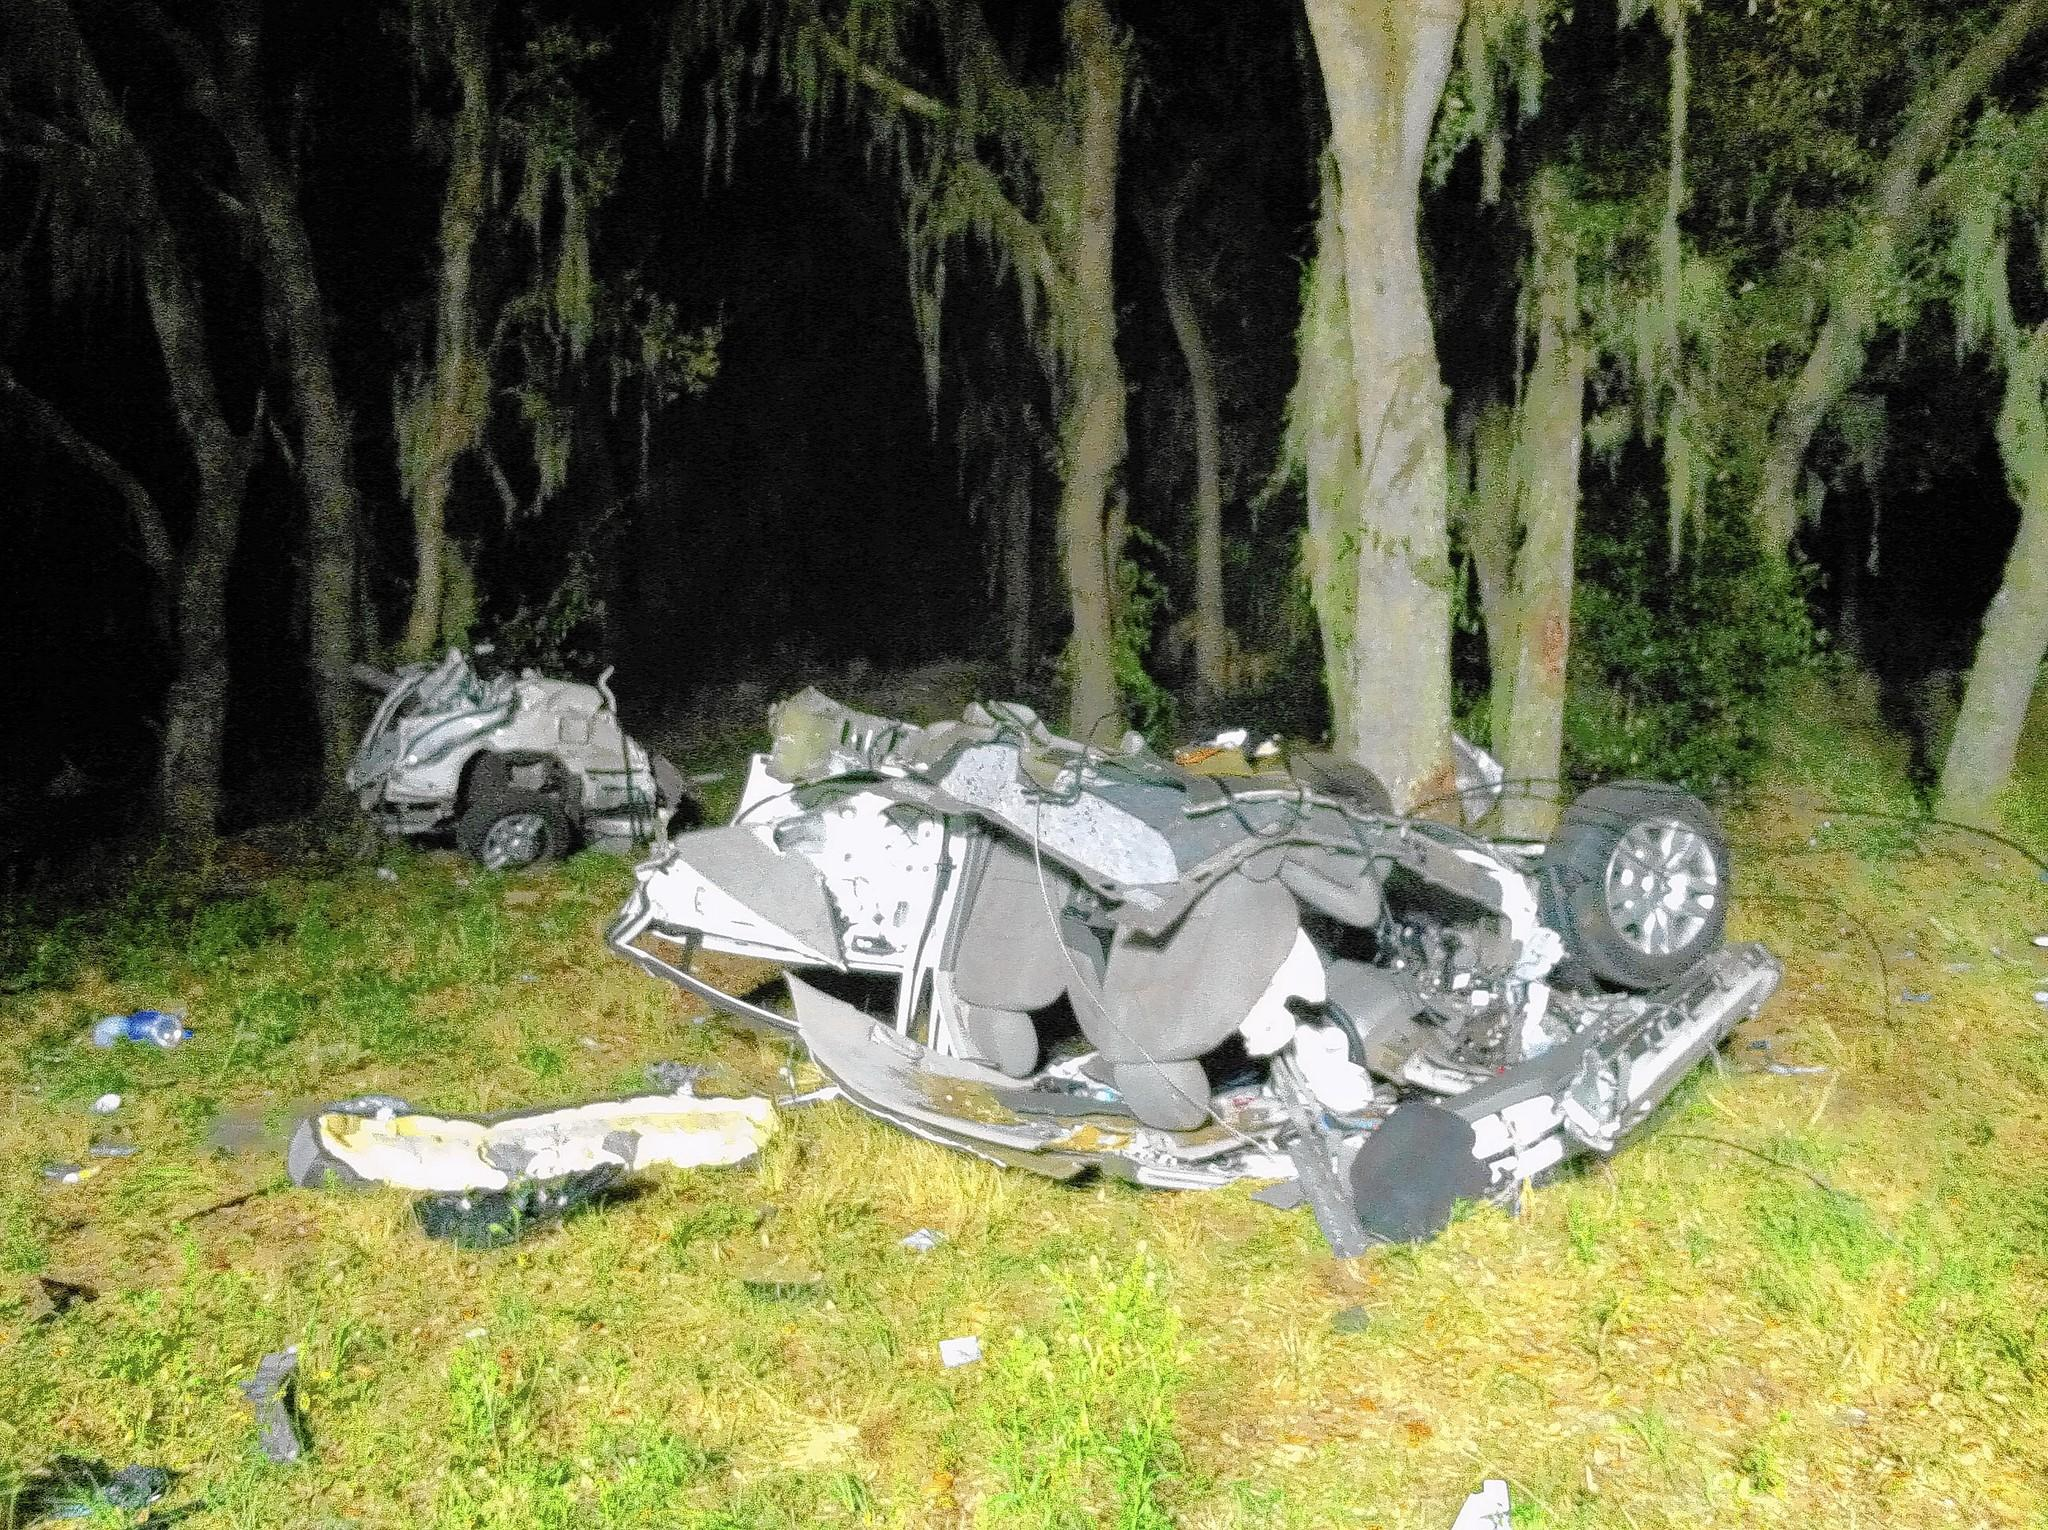 Karen Reynolds Johnson, 49, died when she lost control of her speeding car March 3, 2014 in Polk County, the Sheriff's Office said.